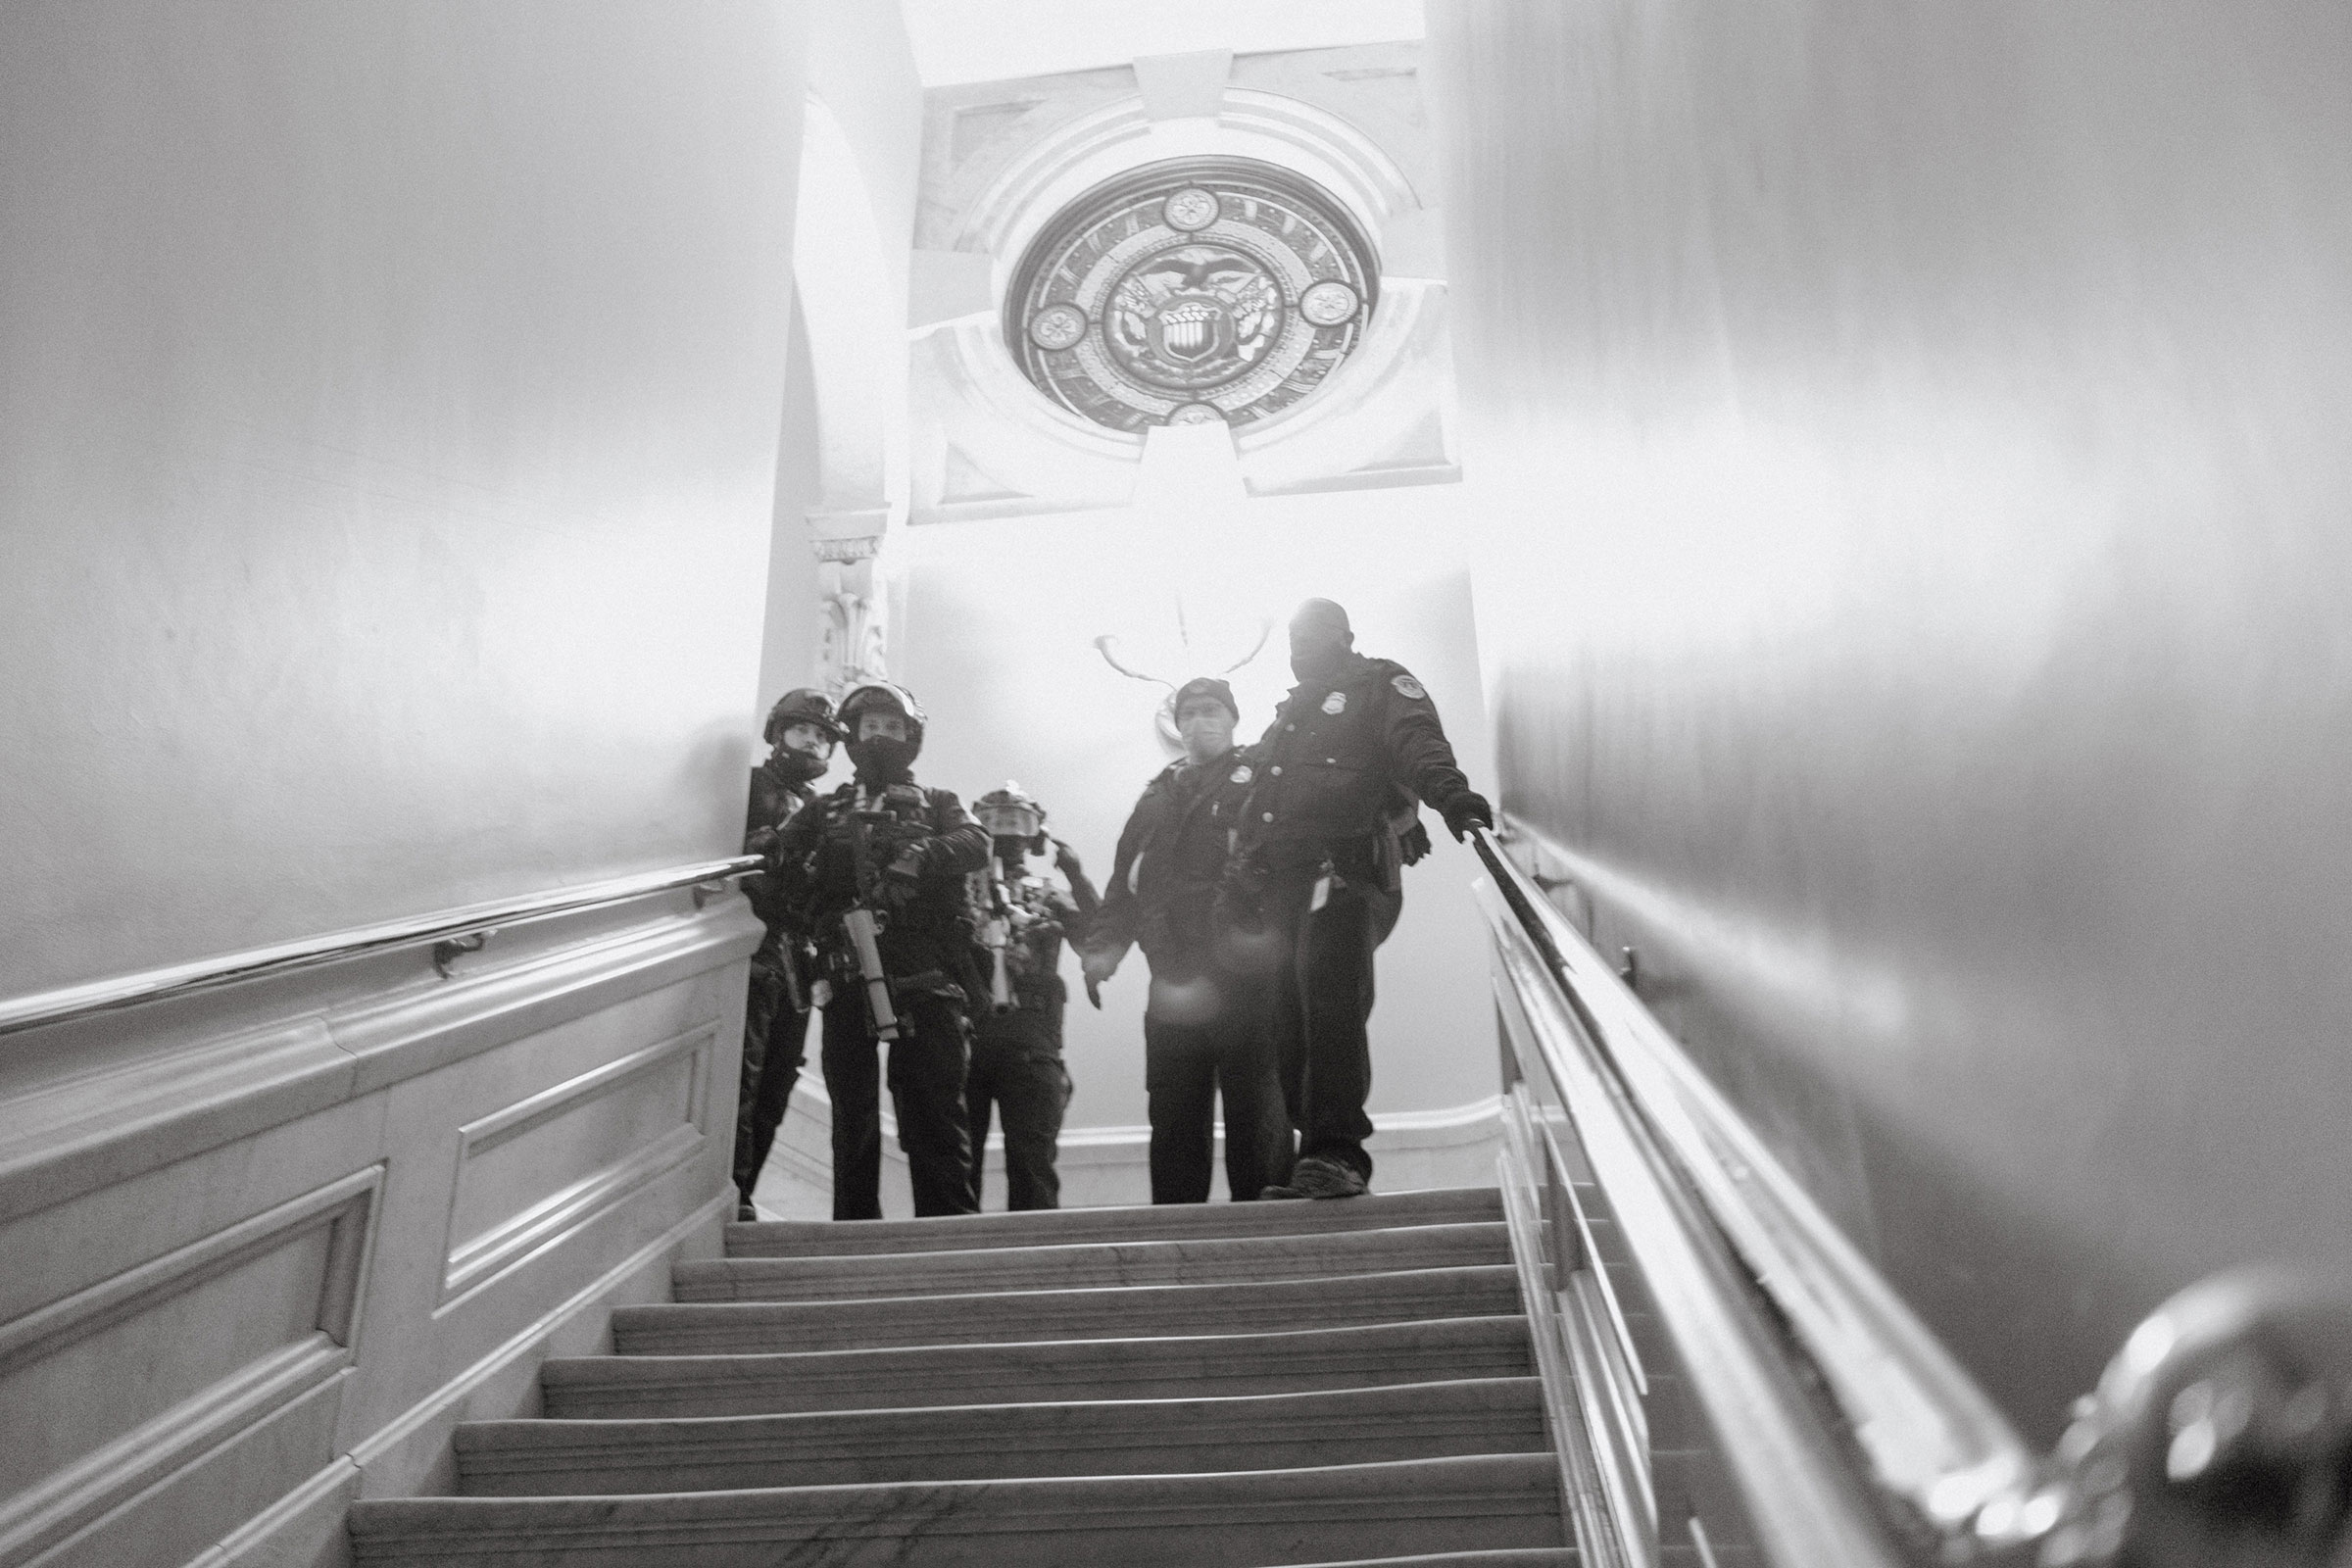 Capitol police seen at the top of a staircase inside the Capitol after a mob of Trump supporters broke in.